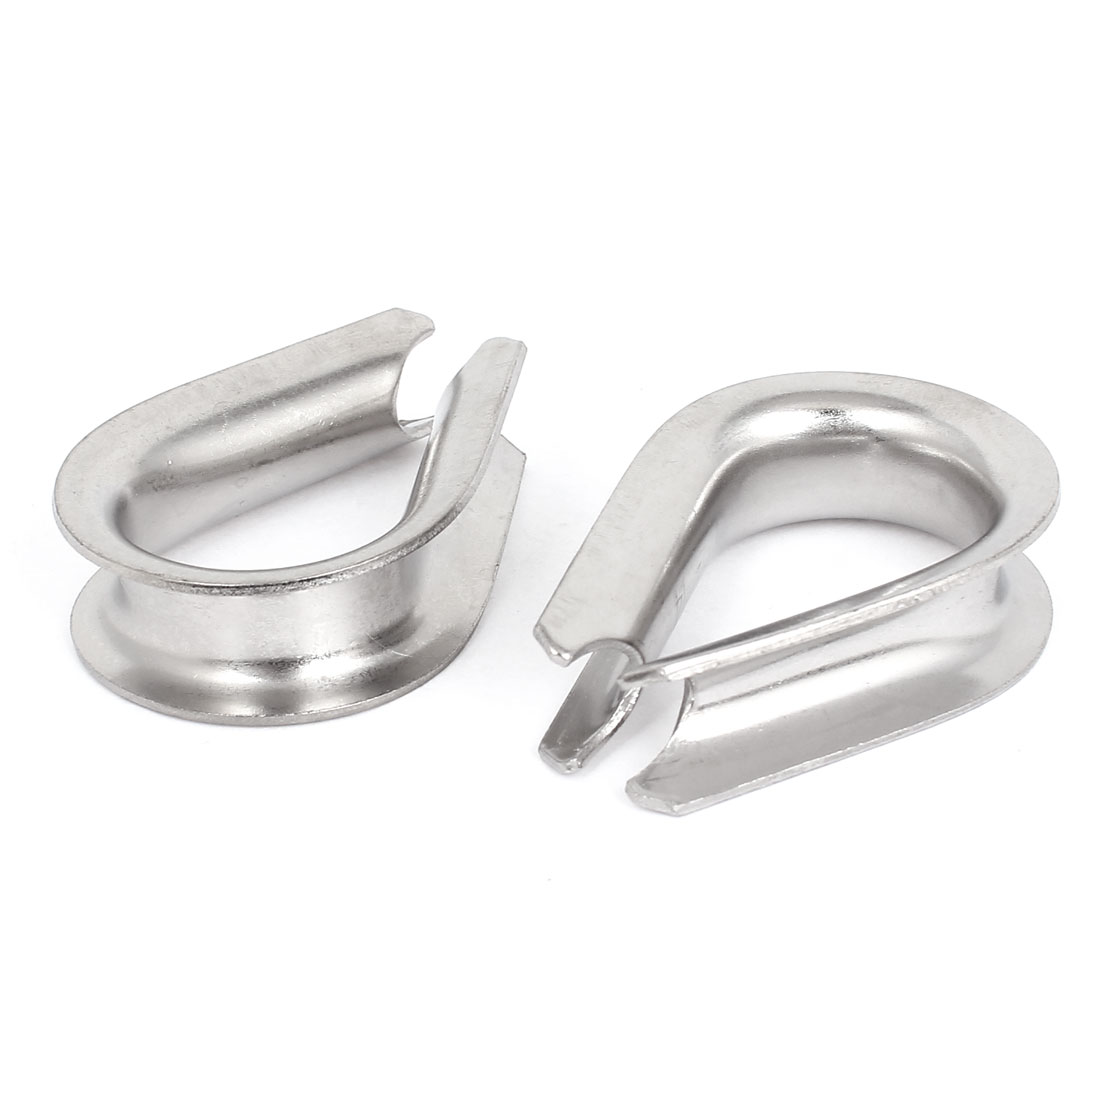 "Stainless Steel 14mm 9/16"" Standard Wire Rope Cable Thimbles Rigging Tool 2 Pcs"